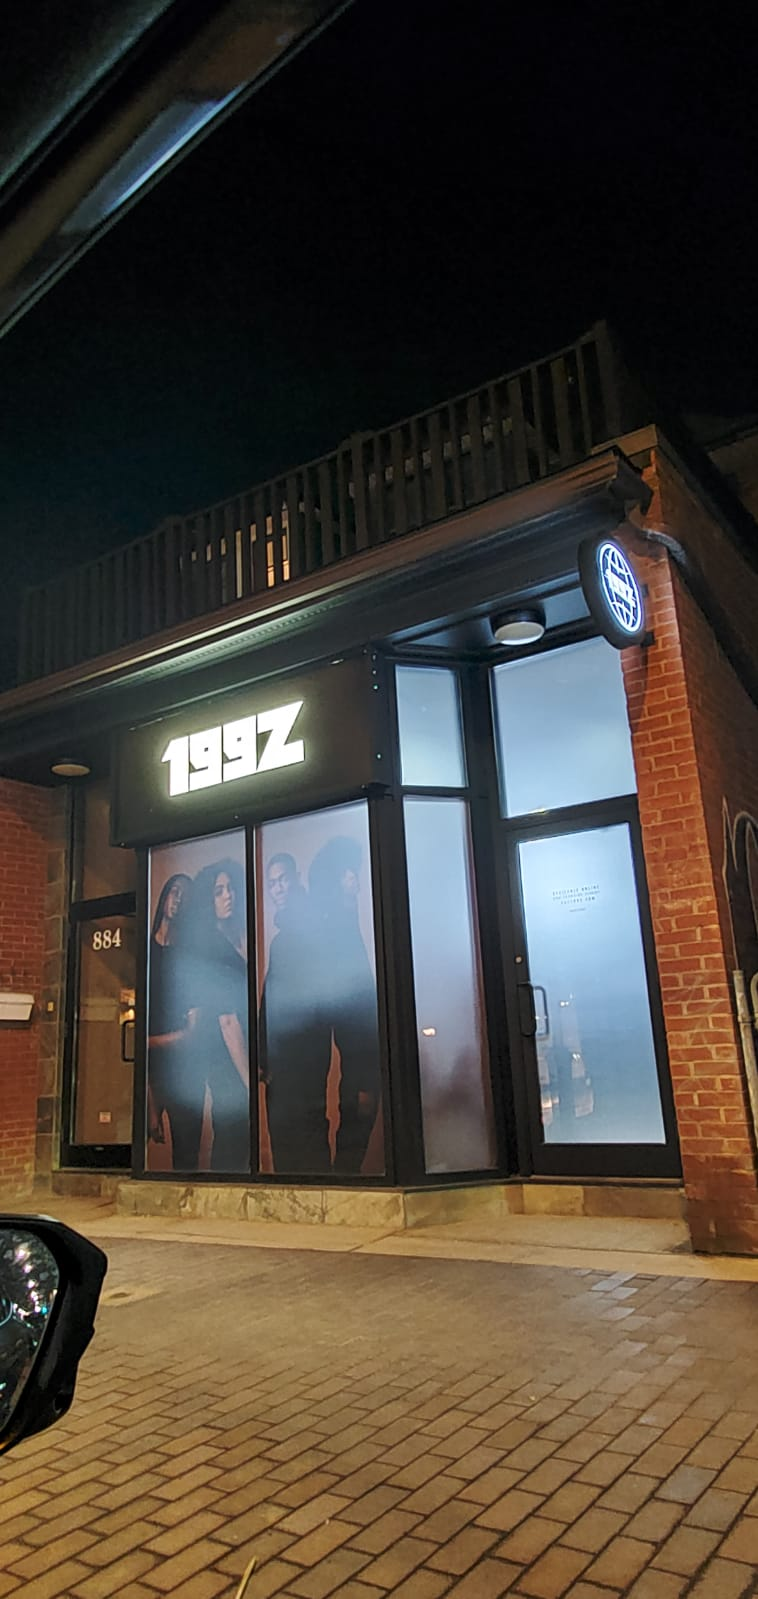 199Z location at 884 College St., Toronto